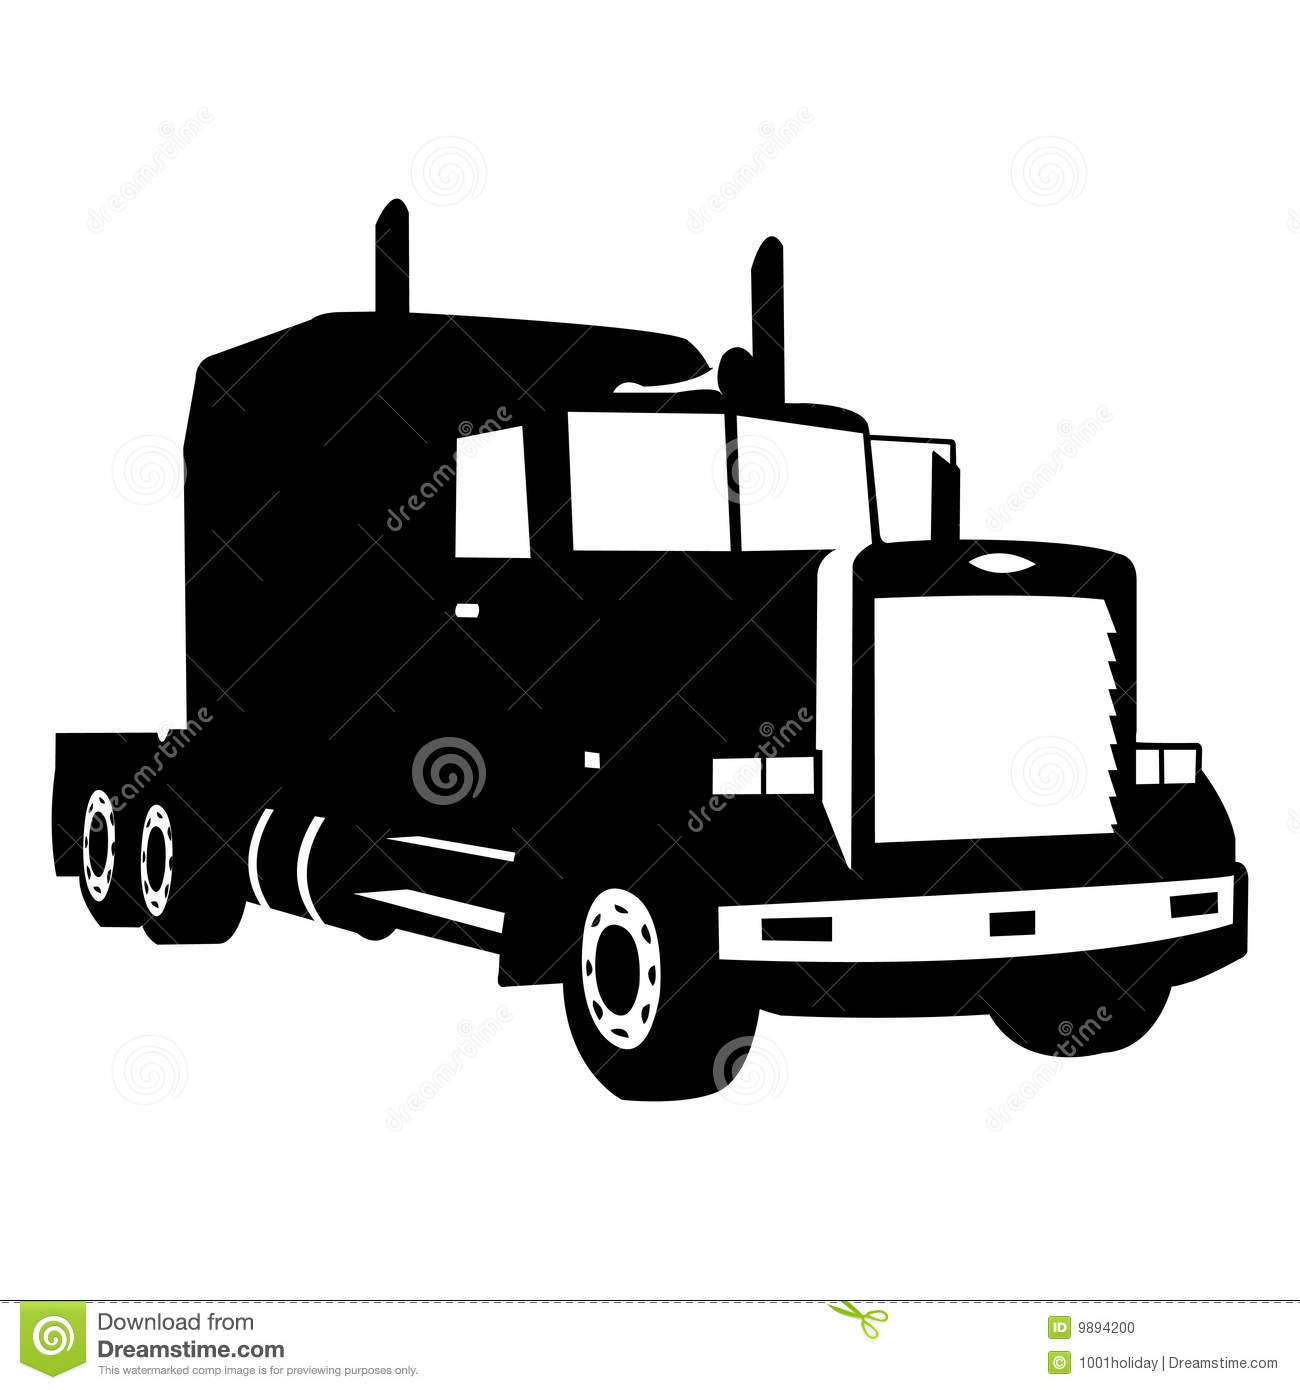 Black Truck Silhouette Vector Illustration